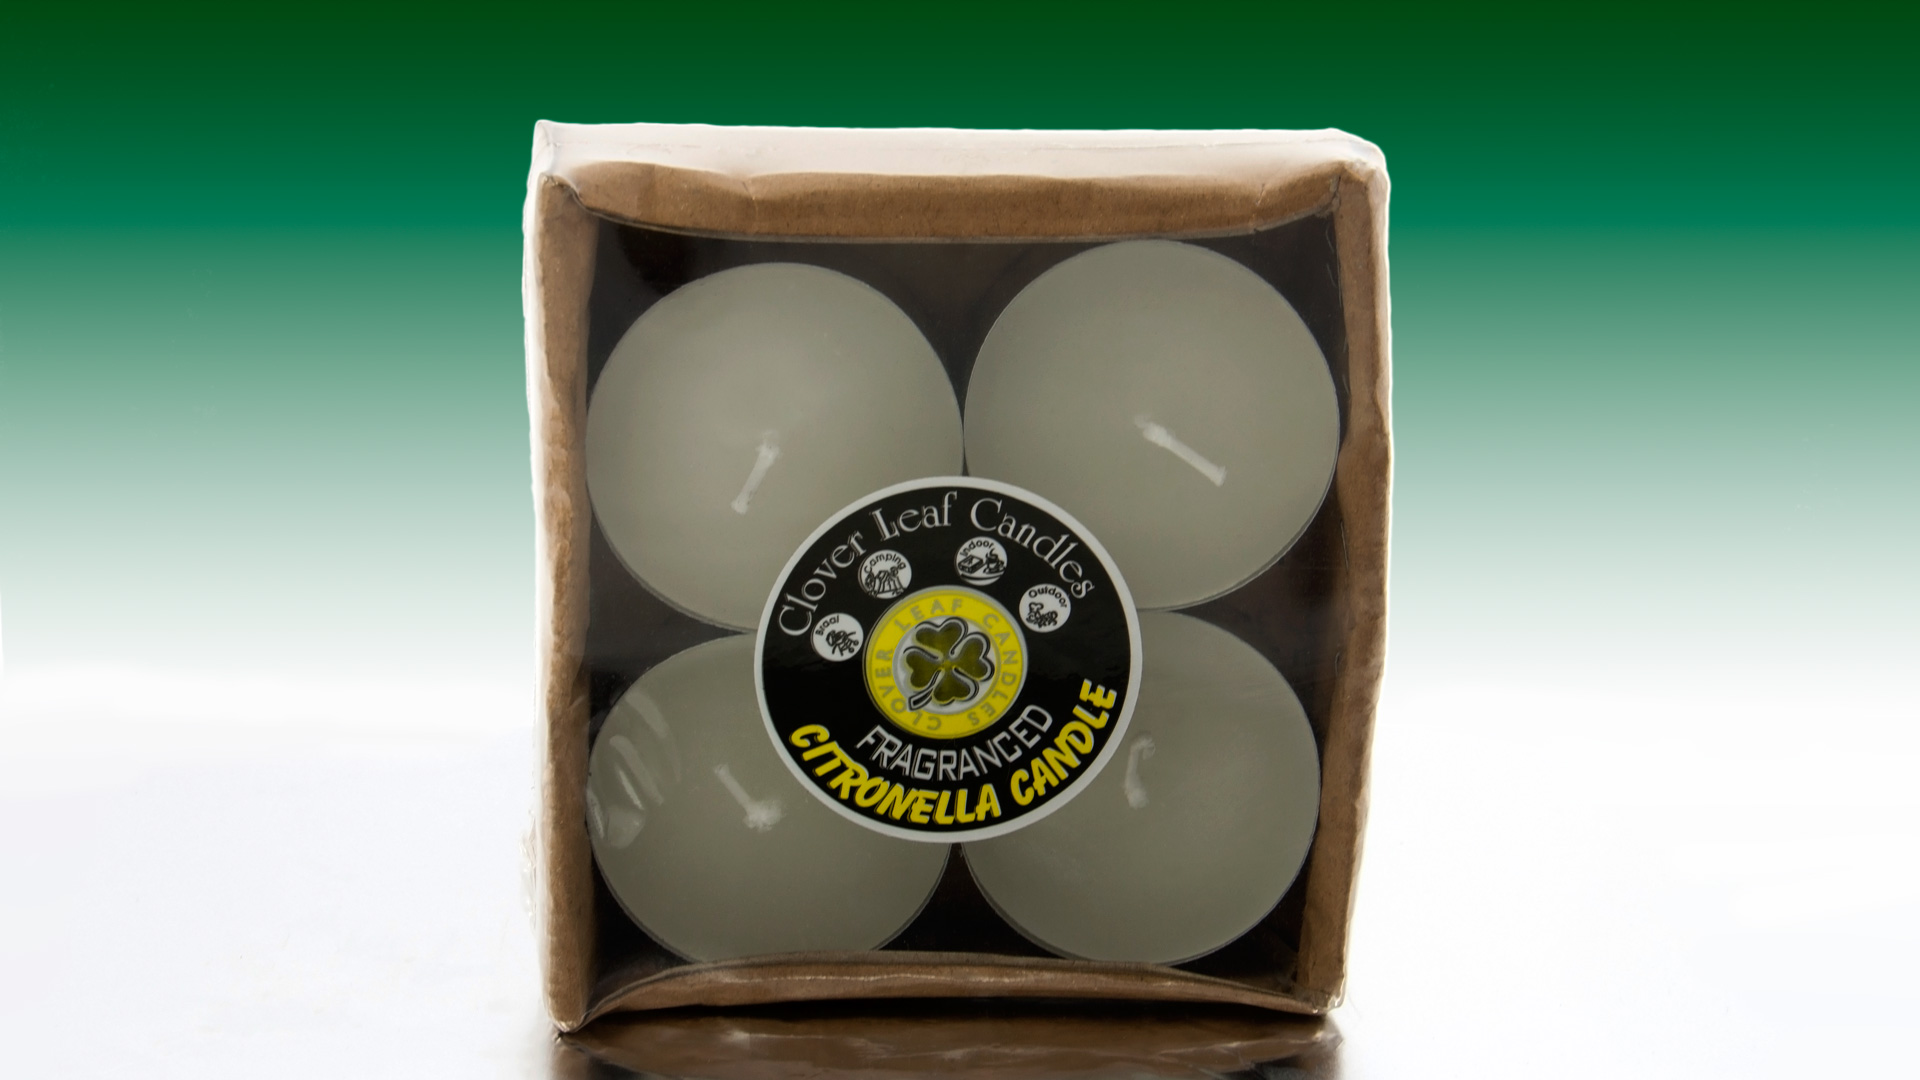 Our Citronella candles are infused with pure and natural citronella oil and are used as a safe and effective insect repellent. *Please note that there are no color options available on citronella candles.